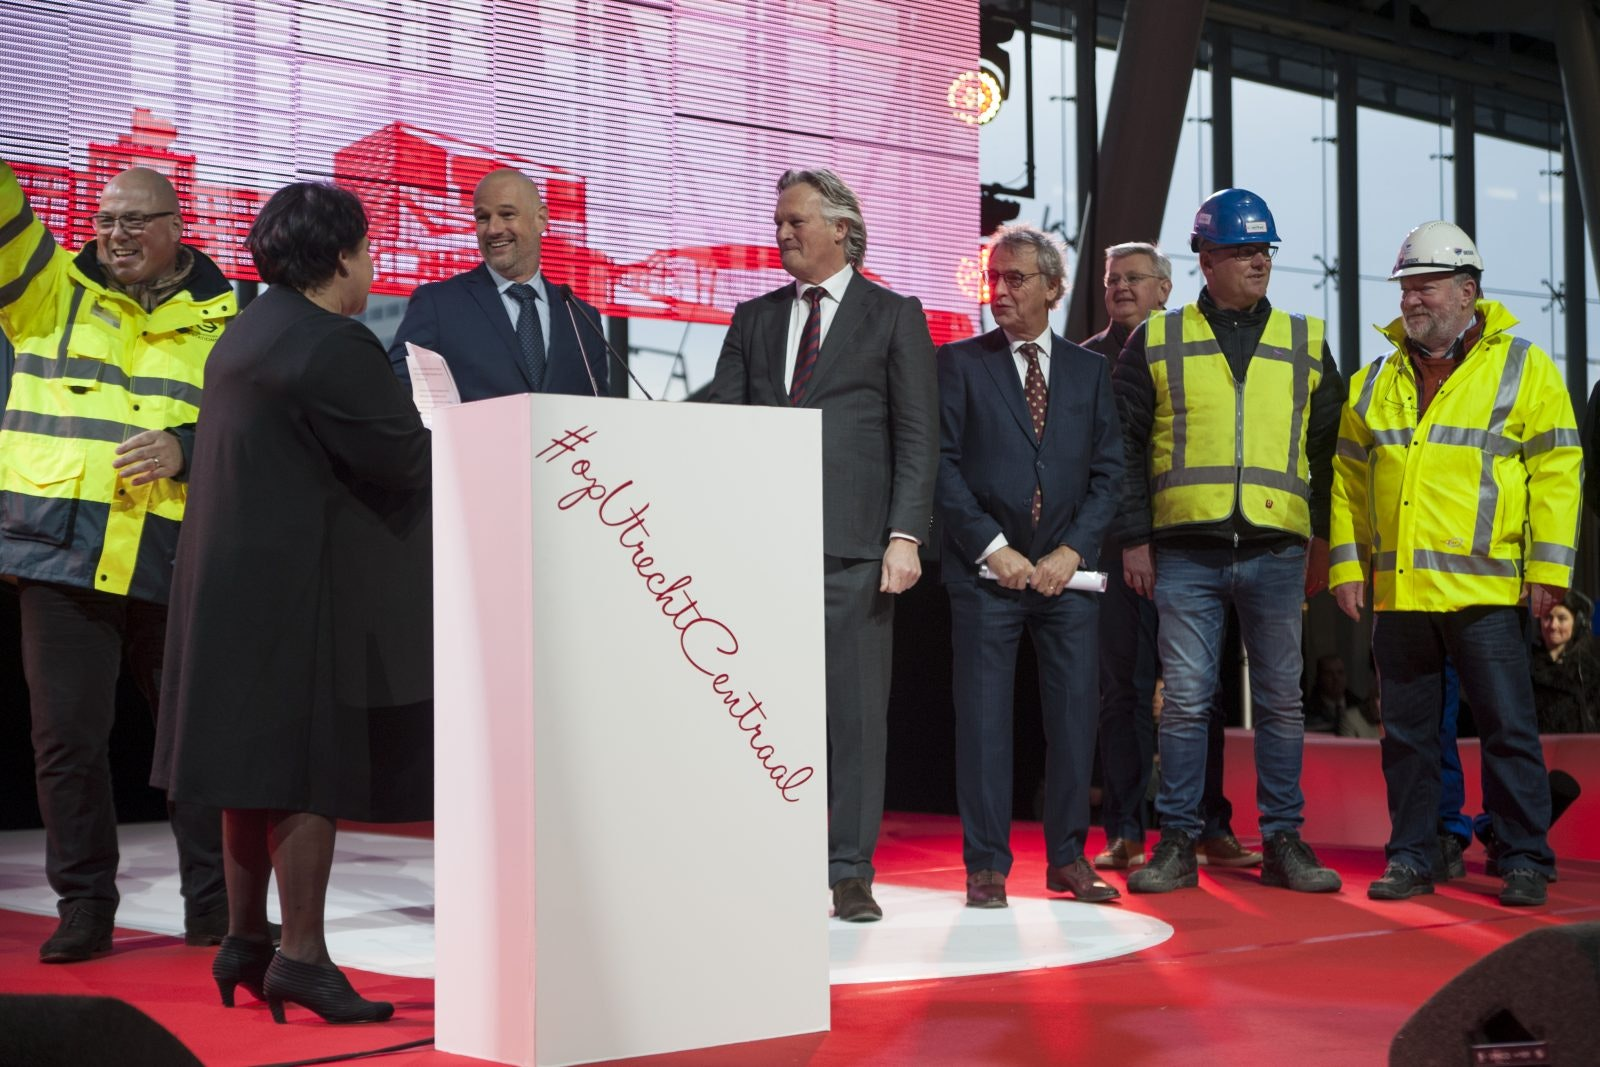 20161207-officiele-opening-03